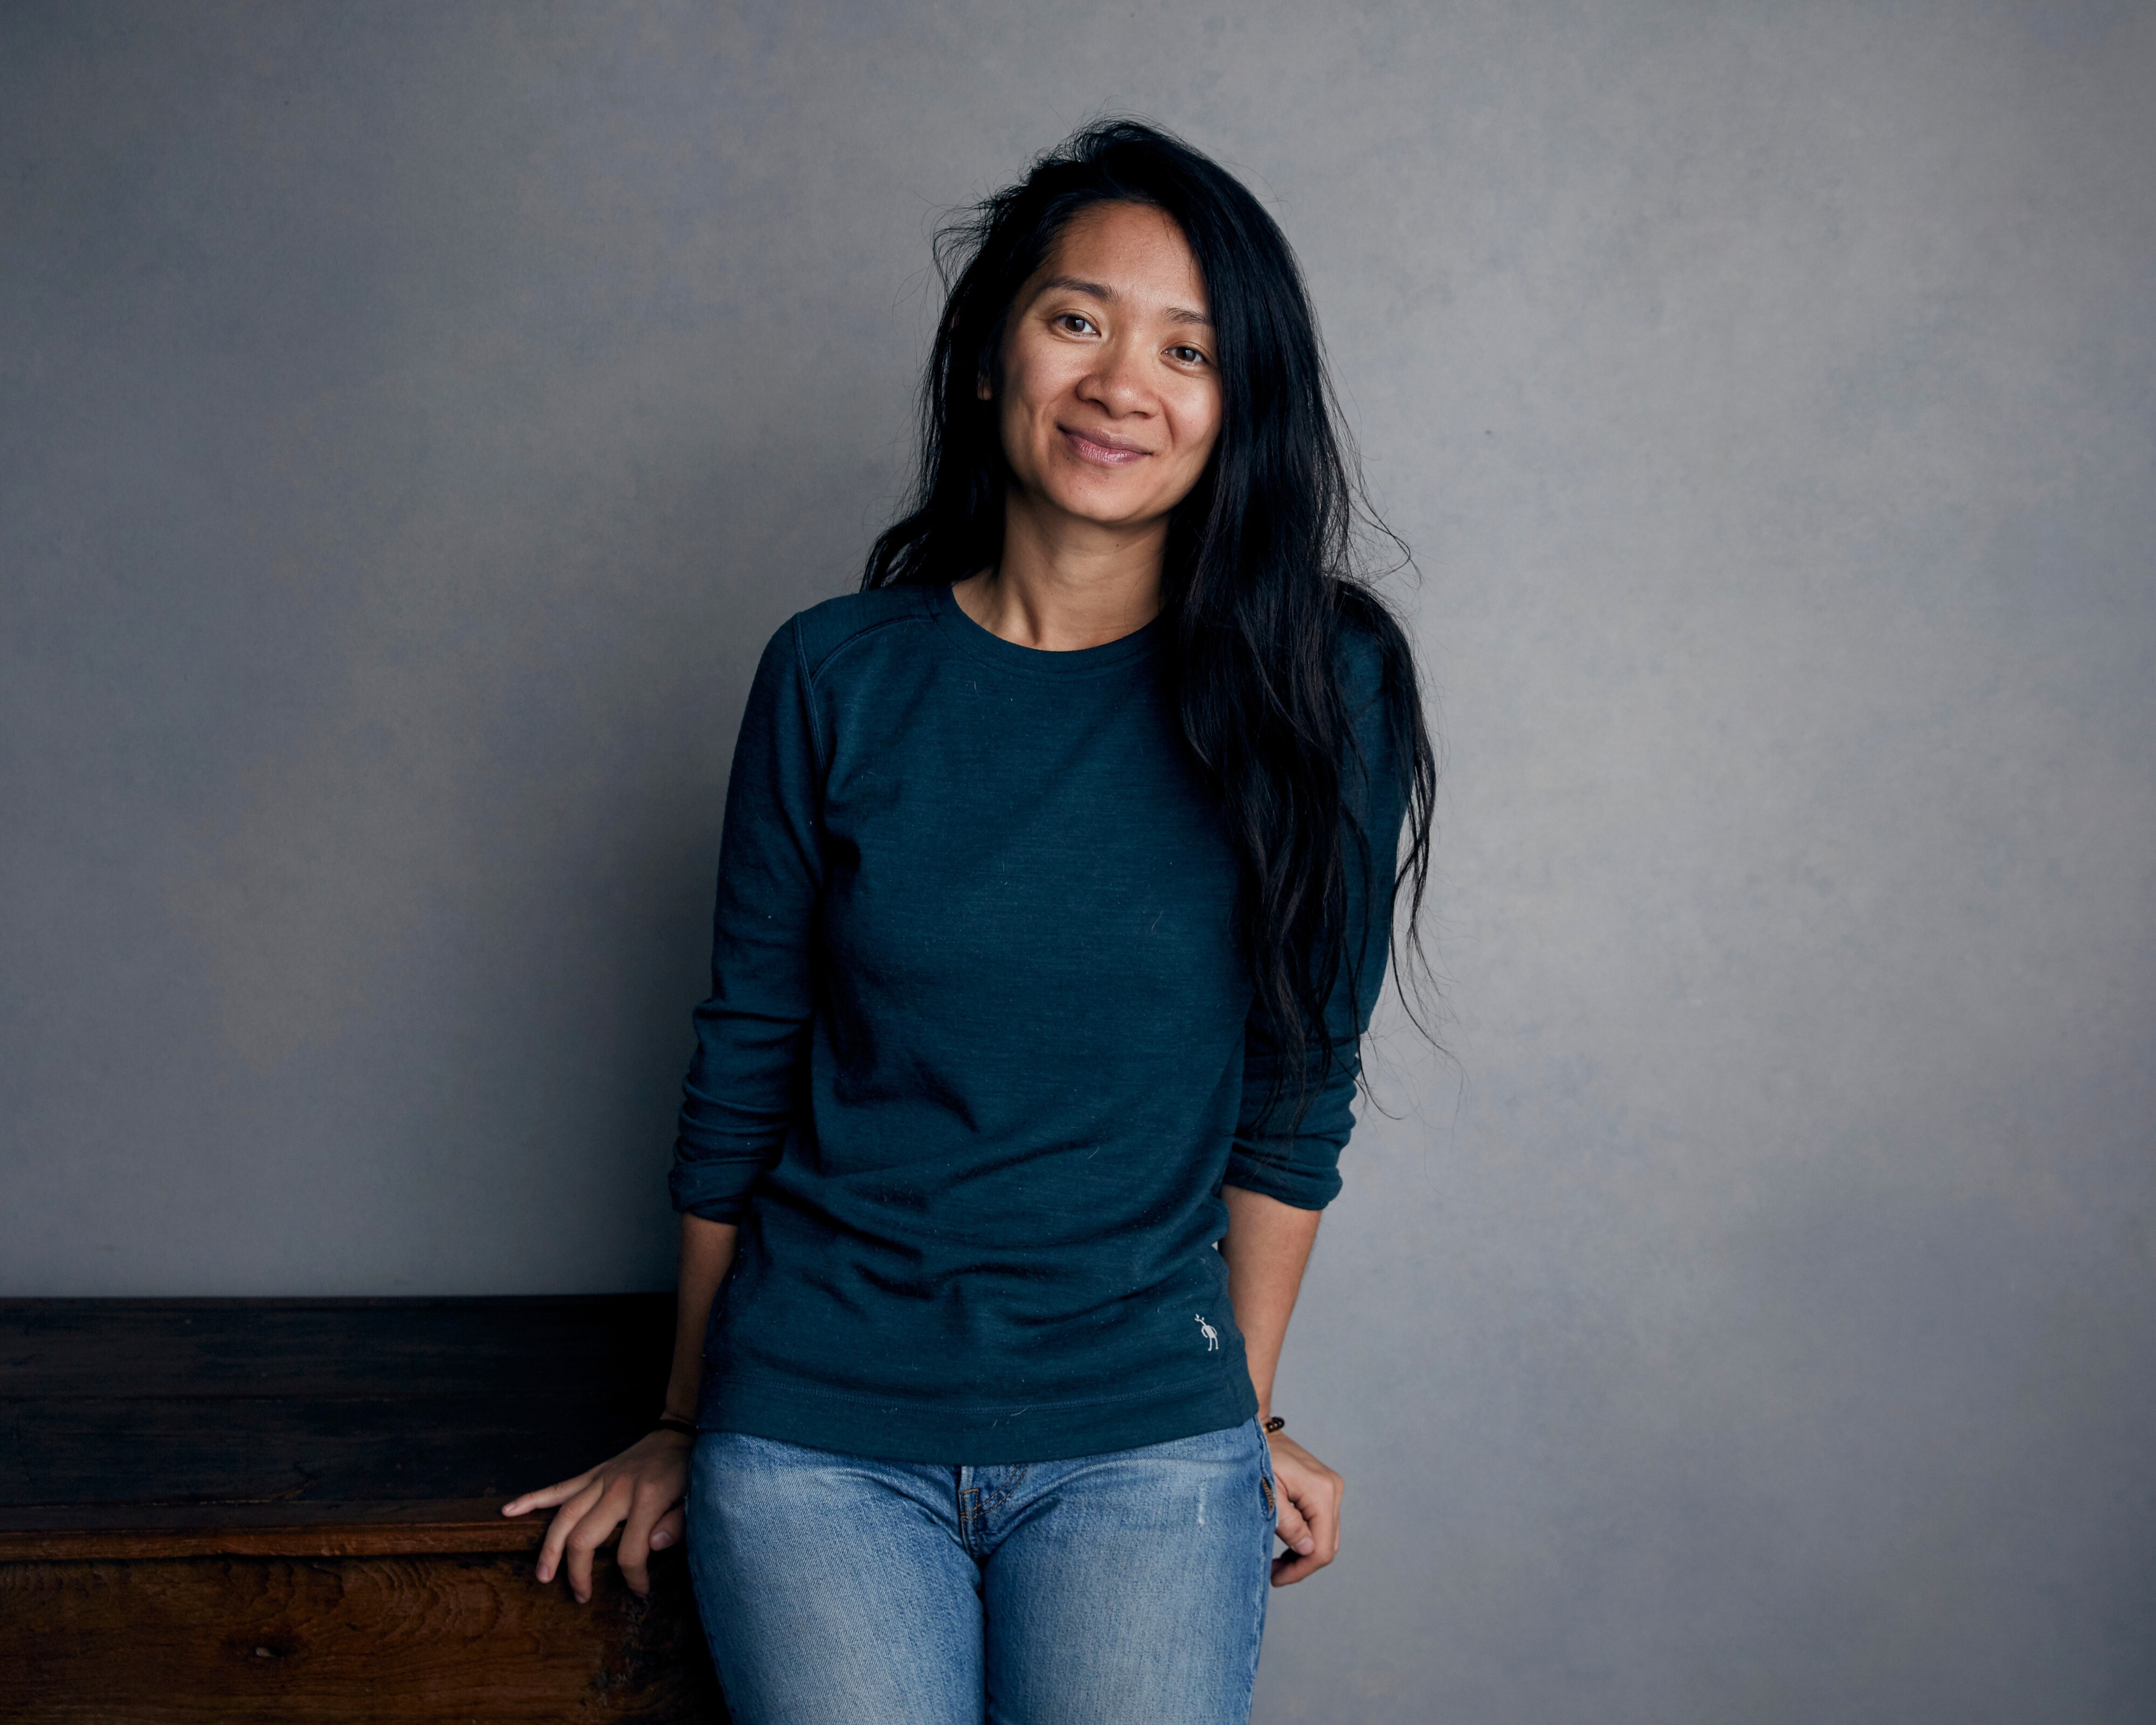 About Chloé Zhao, China-born director of Nomadland – an Oscars hope after  Venice win – who's directing Marvel's Eternals with Angelina Jolie and  Salma Hayek | South China Morning Post